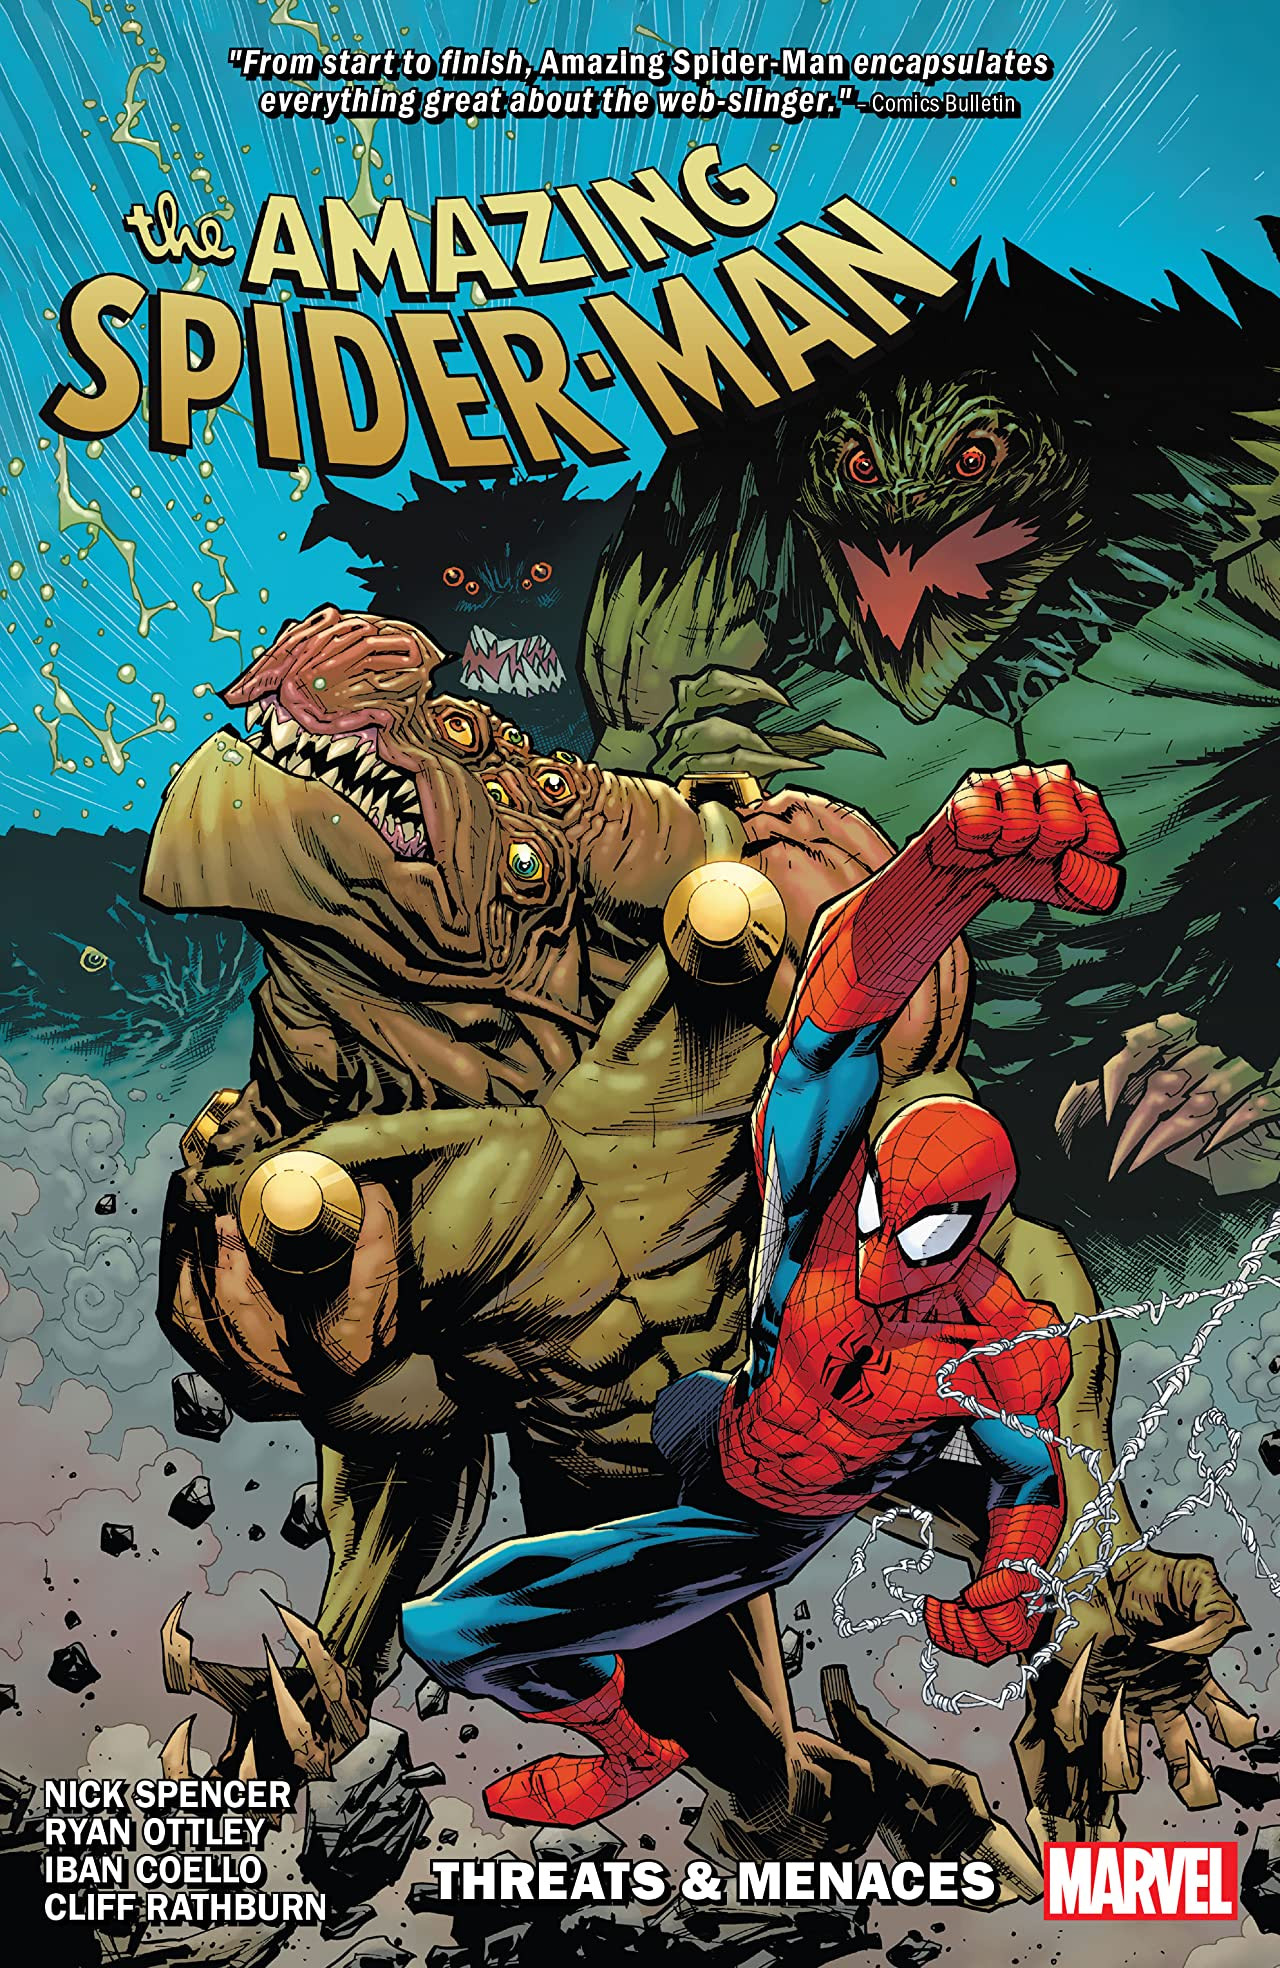 Amazing Spider-Man by Nick Spencer Vol 1 8: Threats & Menaces